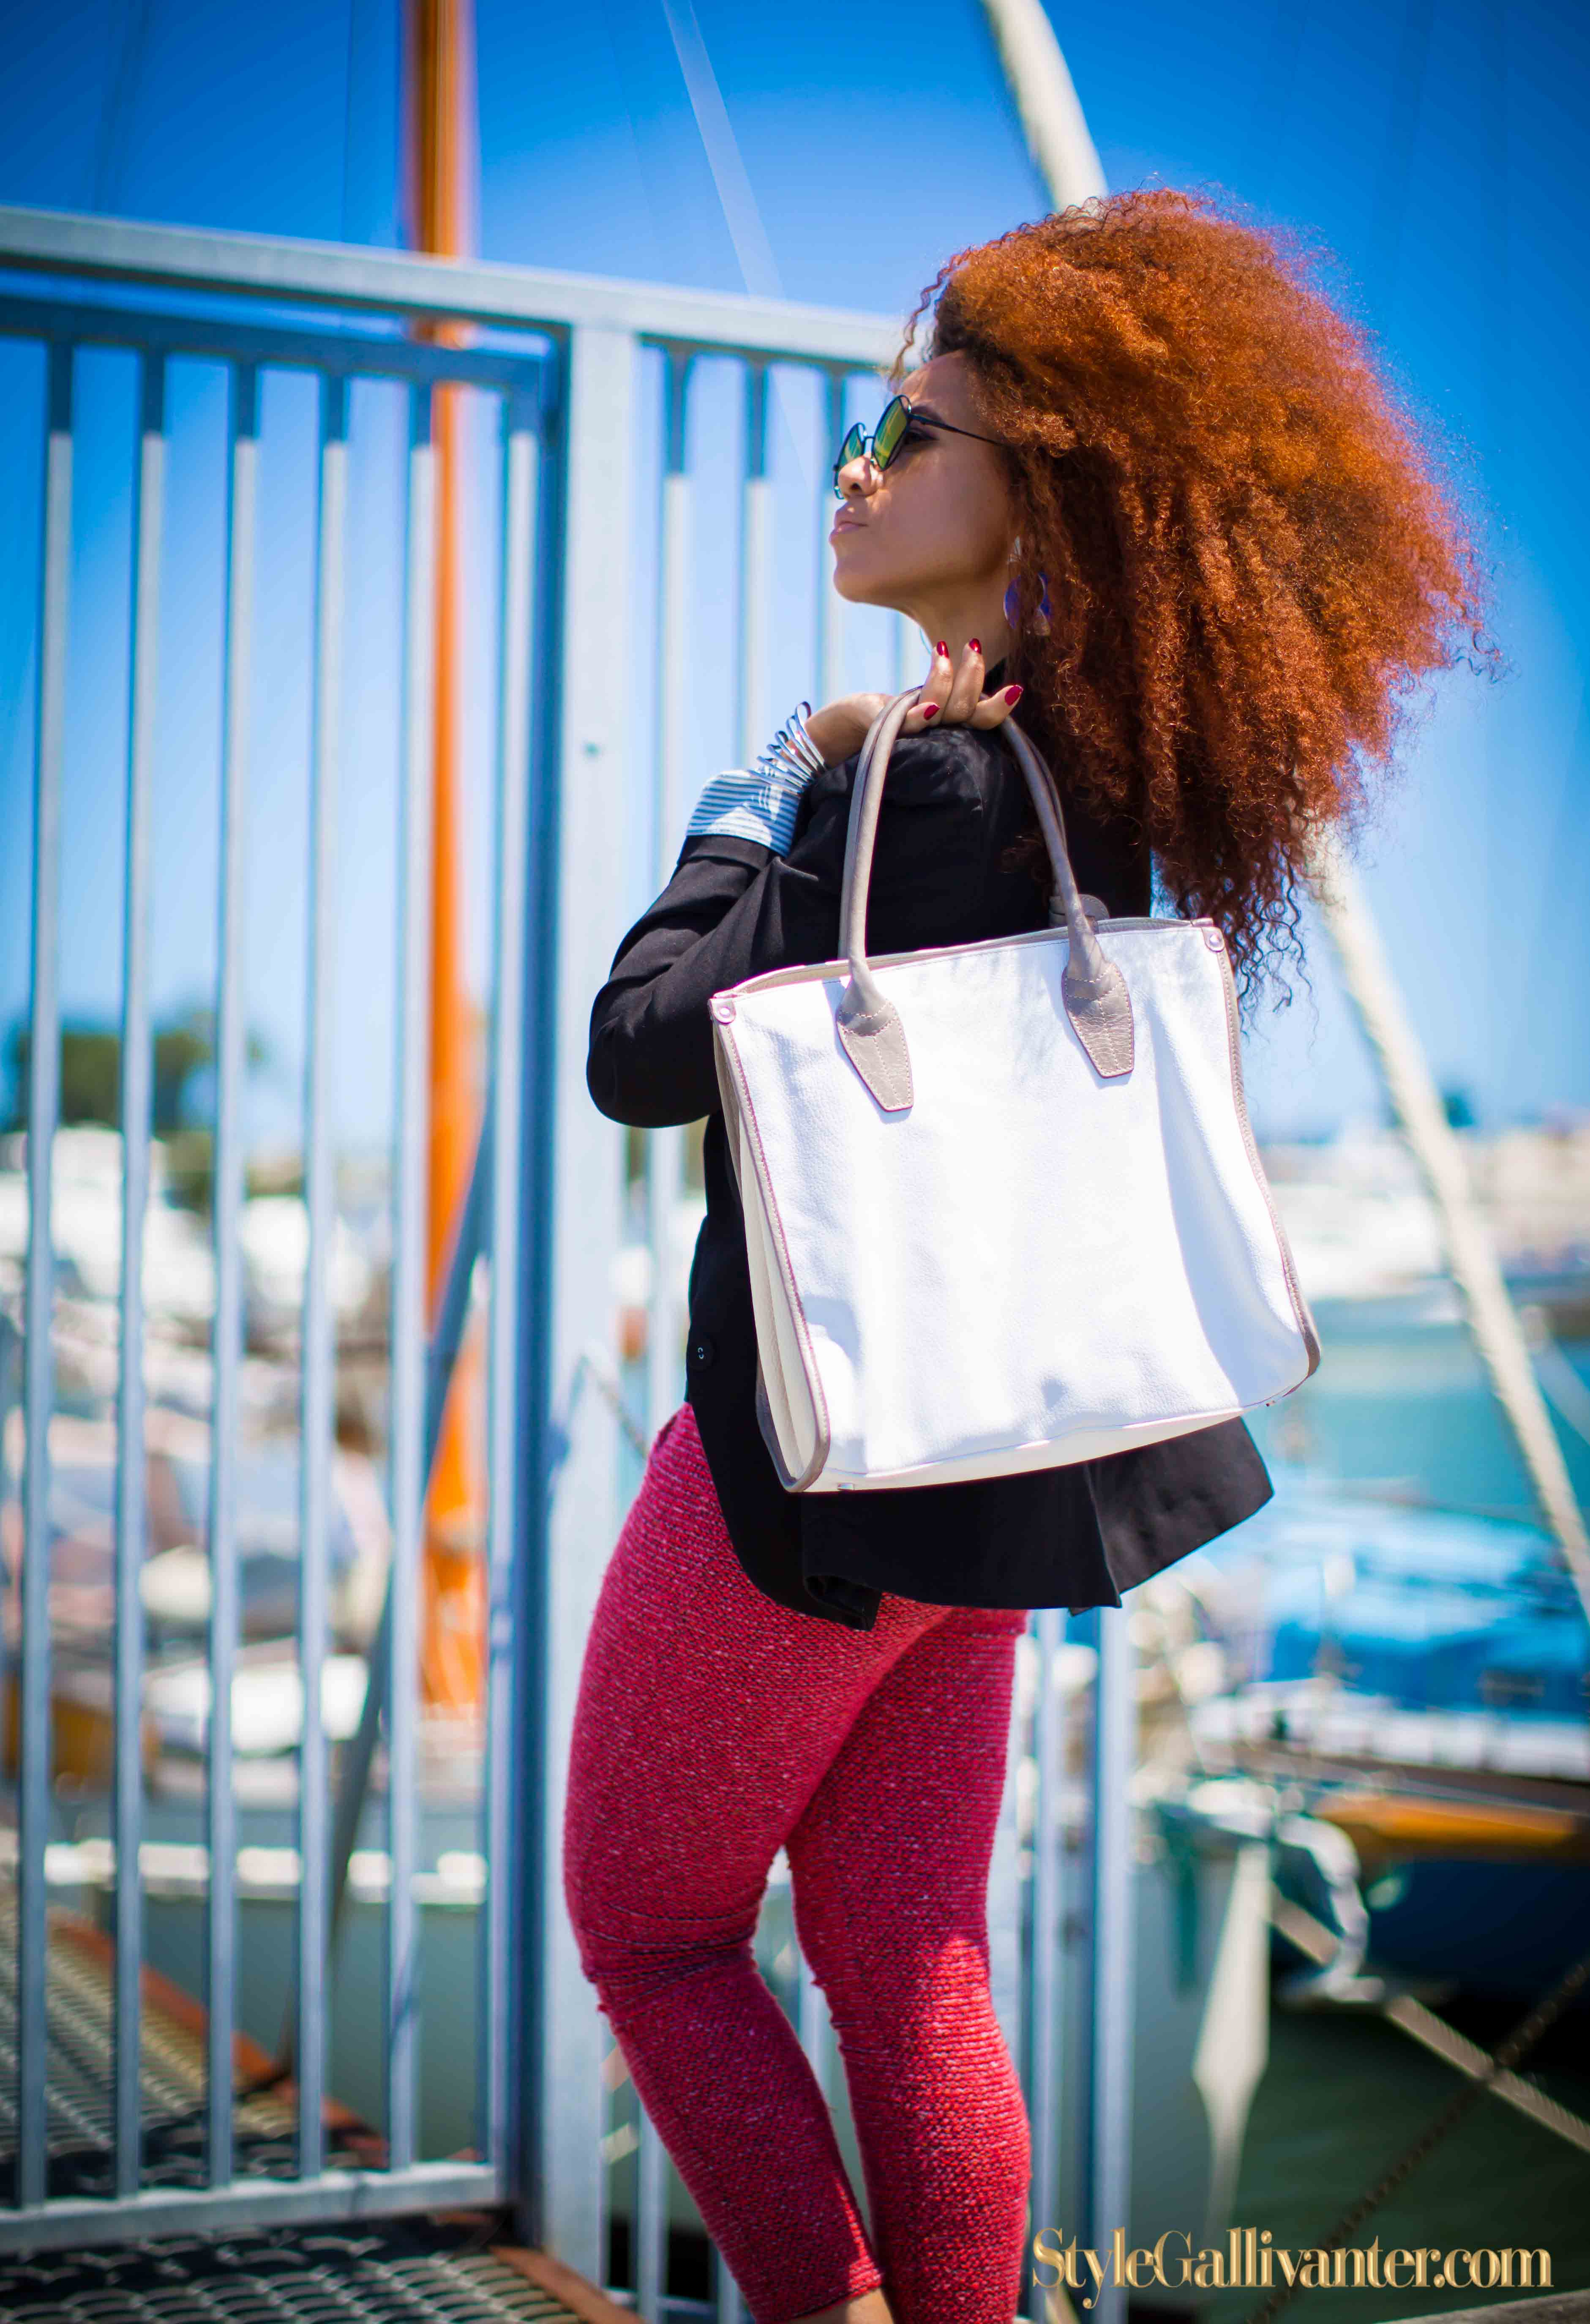 cover-girls-2014_the-face-australia_canberra-fashion-blogs_sydney-fashion-blogs_imternational-fashion-bloggers_africas-best-hair-bloggers_best-natural-hair-blogs-16